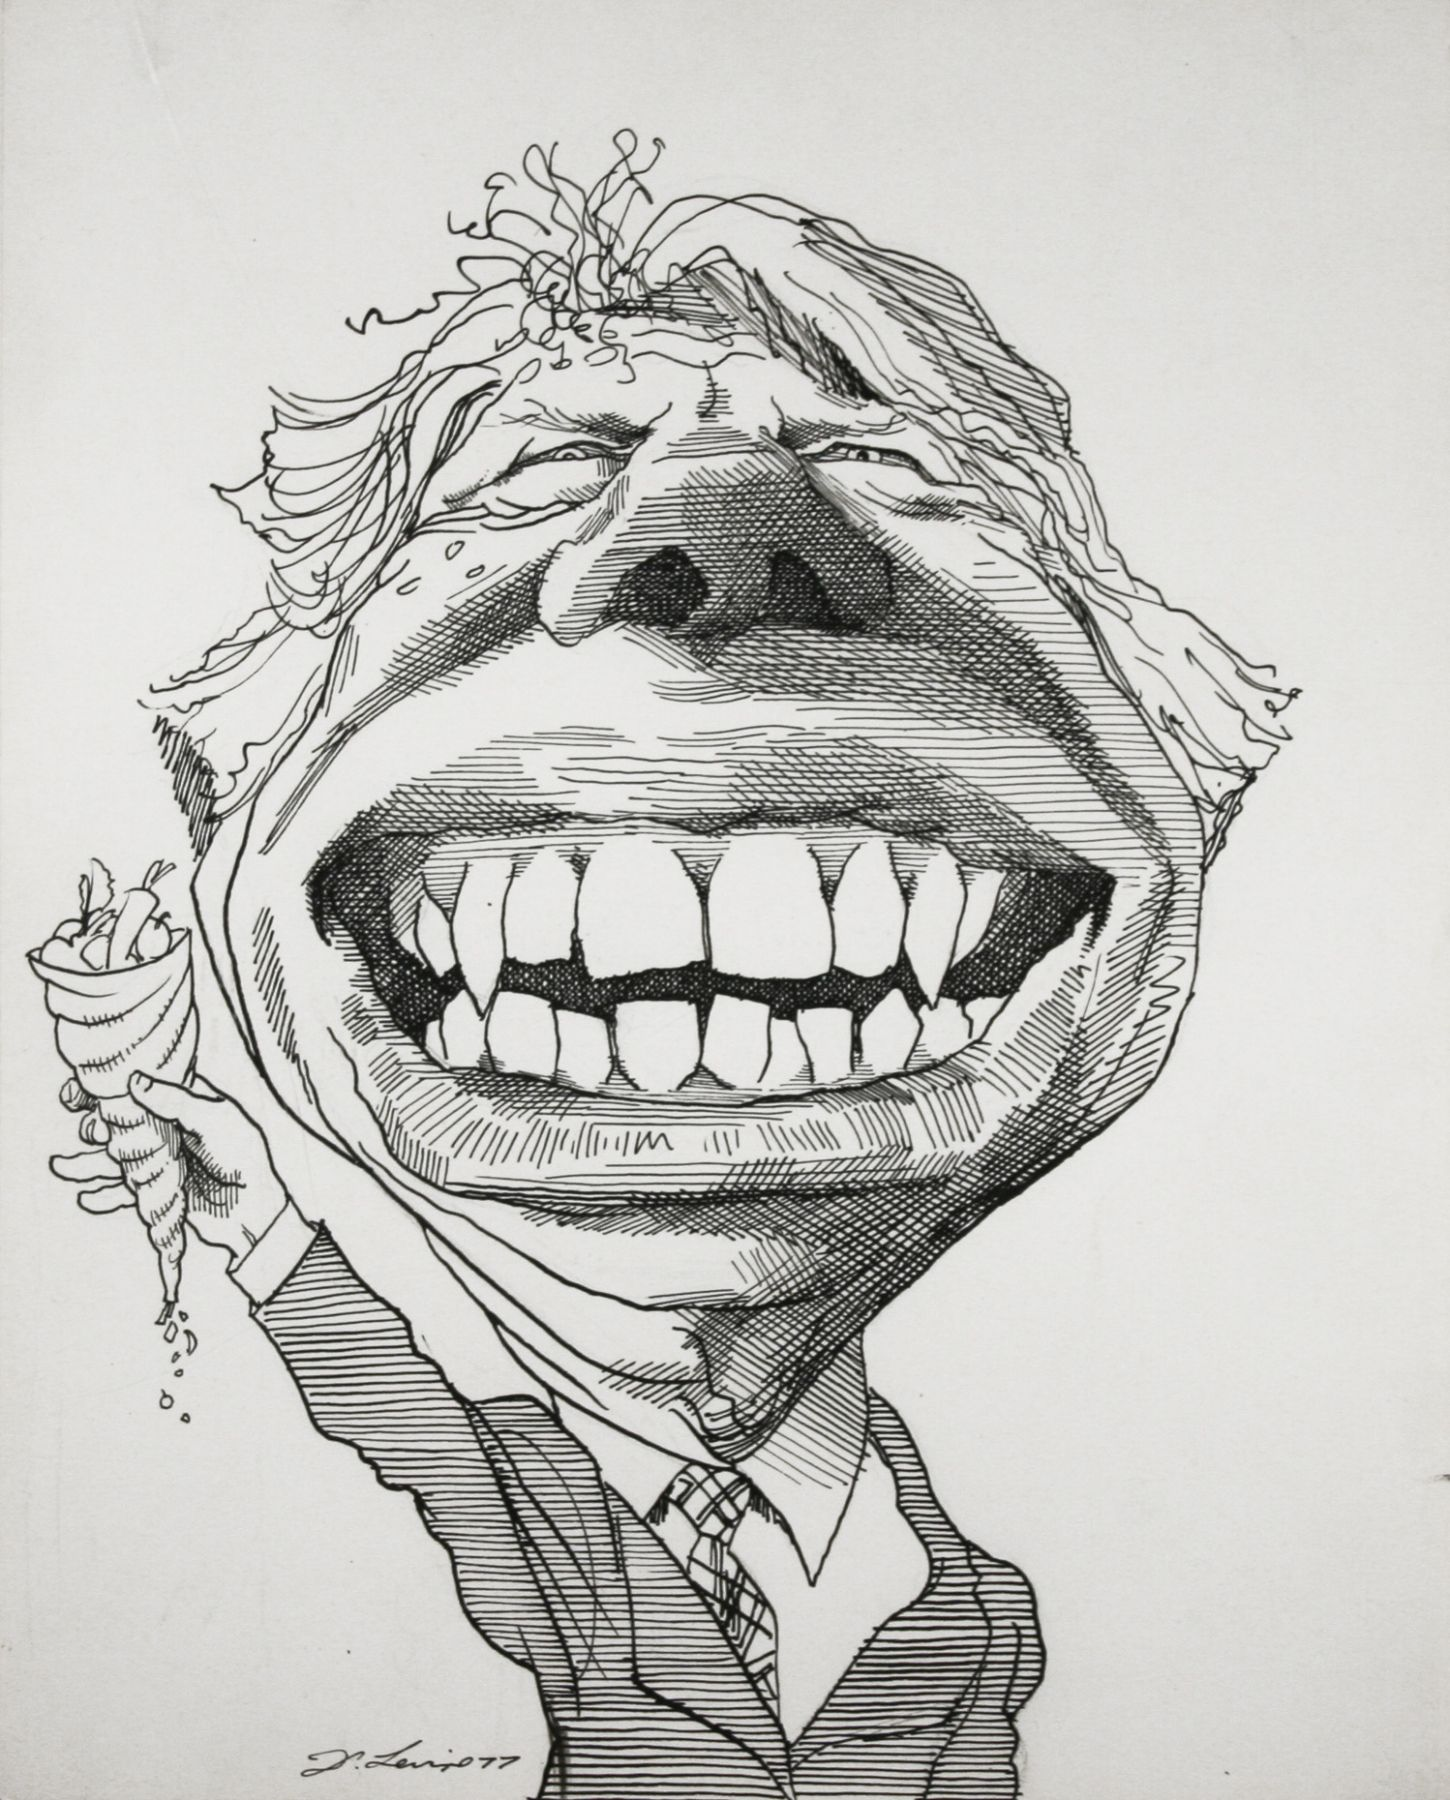 David Levine, Jimmy Carter, 1977, ink on paper, 13 3/4 x 11 inches